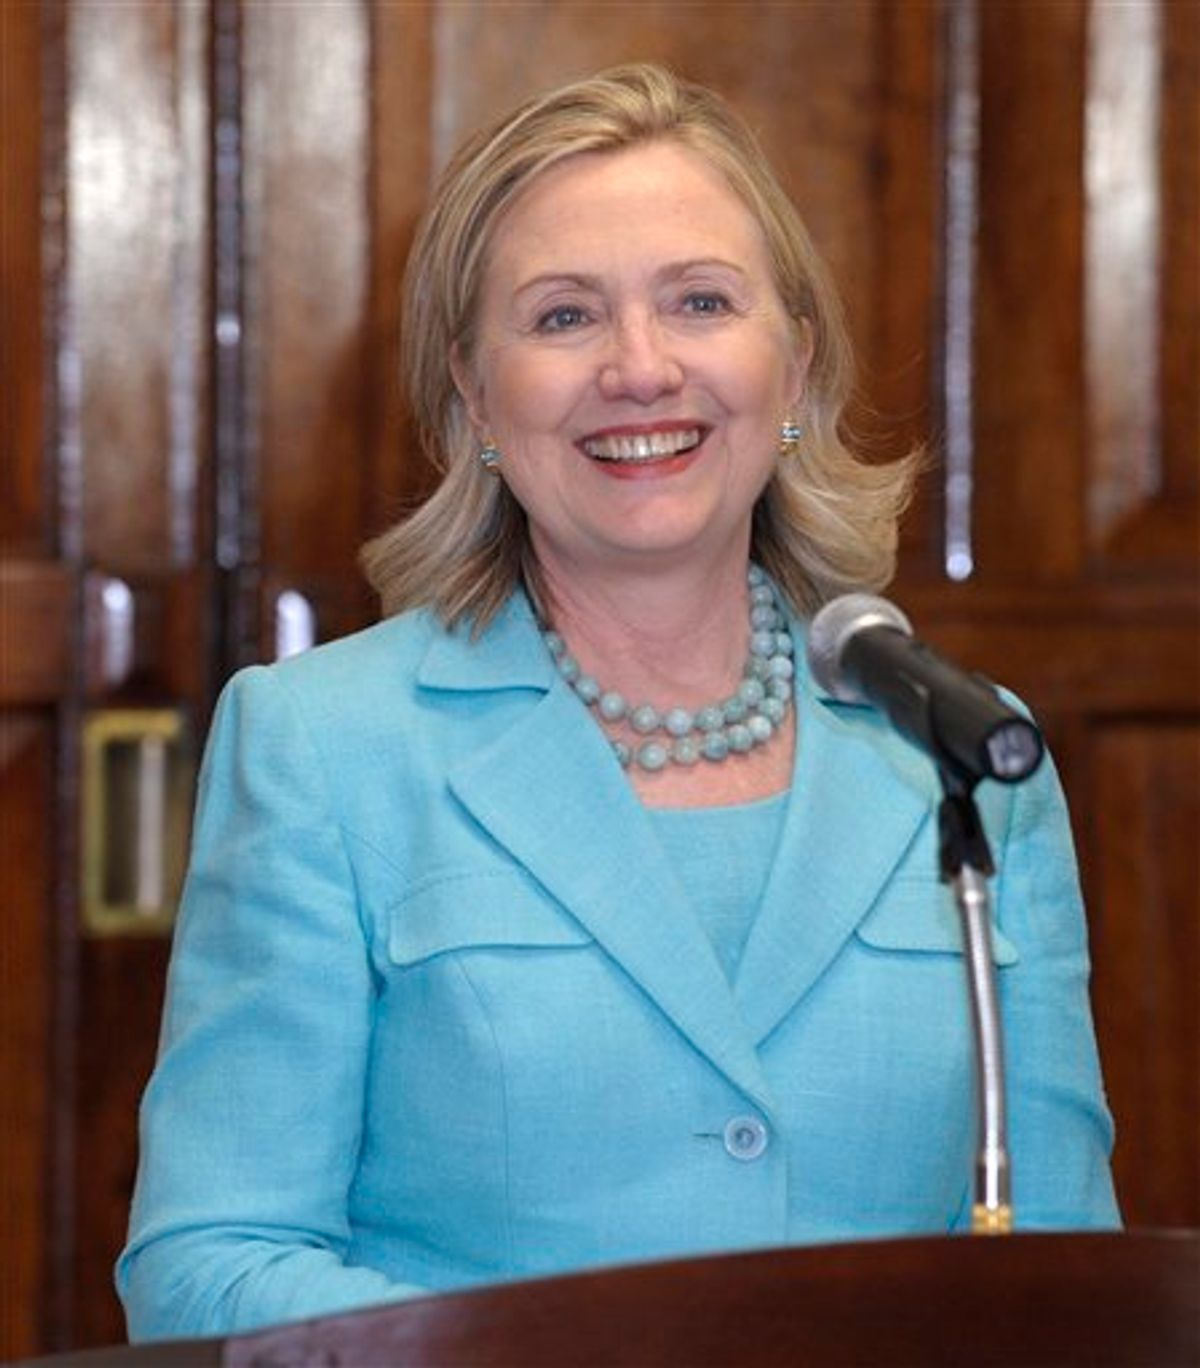 Secretary of State Hillary Rodham Clinton speaks during a press availability with Zambia's President Rupiah Banda during a press availability at the State House in Lusaka, Zambia, Friday, June 10, 2011.  (AP Photo/Susan Walsh, Pool) (AP)